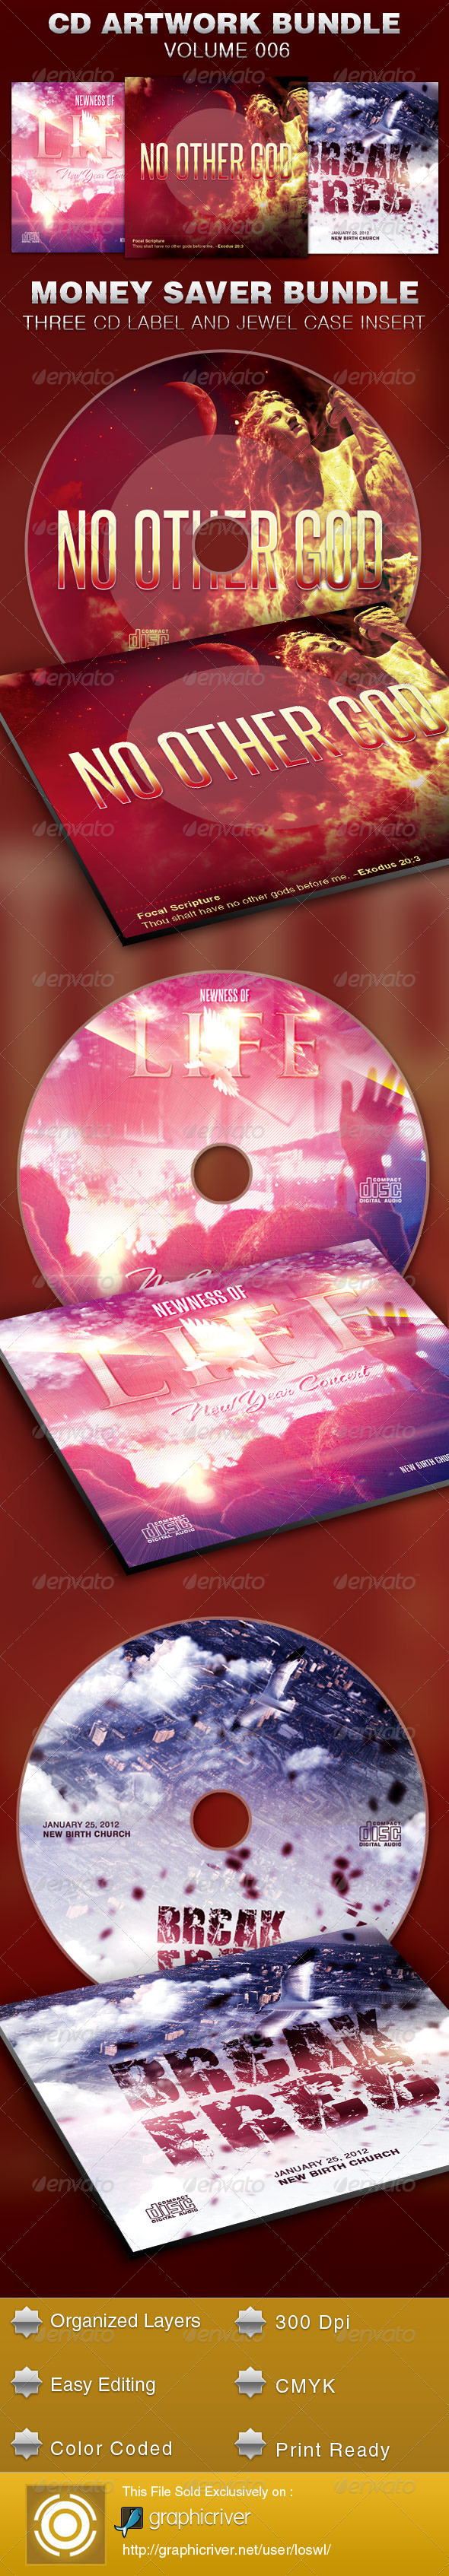 CD Cover Artwork Bundle-Vol 006 - CD & DVD artwork Print Templates